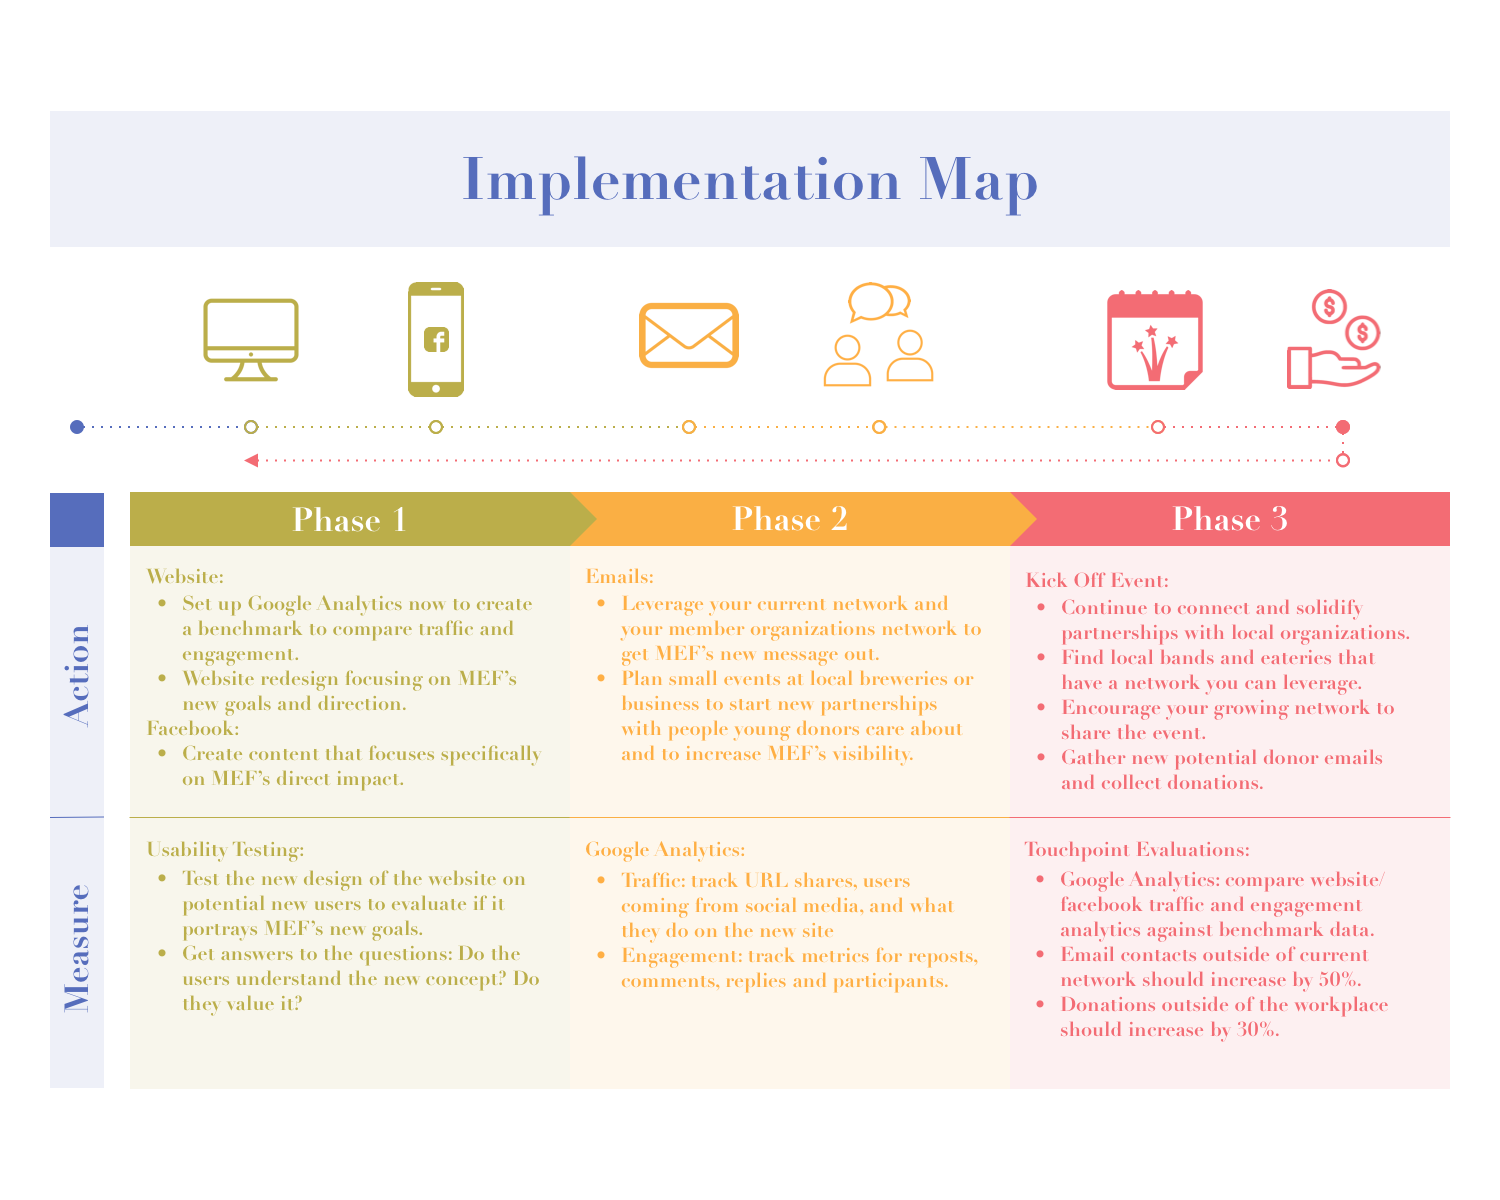 implementation - The team and MEF now had an understanding of what aspects of their current outreach needed a redesign to connect with a younger donor base. I created an implementation map to show the projects next steps in three phases and the metrics we will use to measure progress.